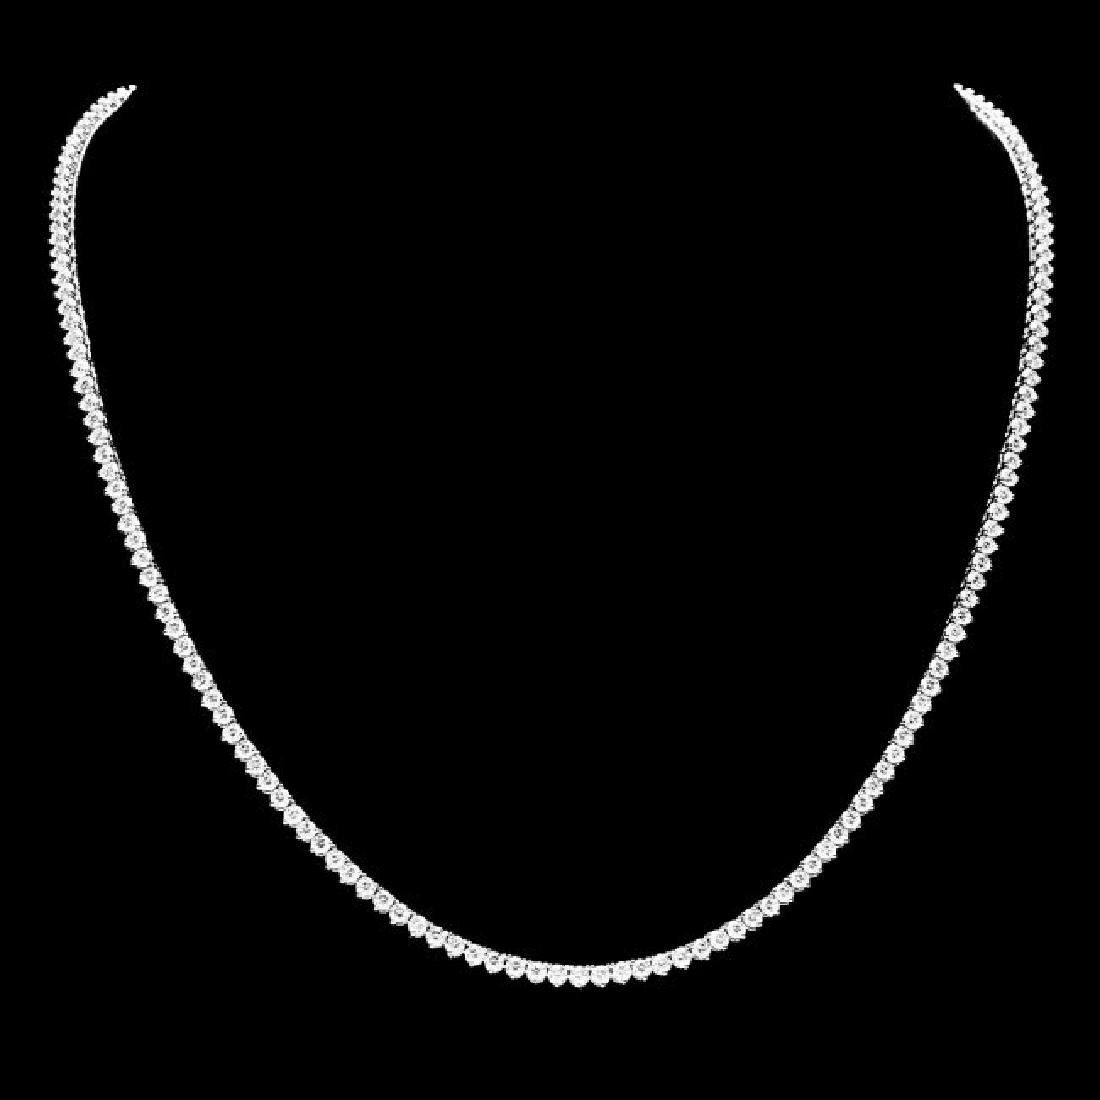 18k White Gold 7.60ct Diamond Necklace